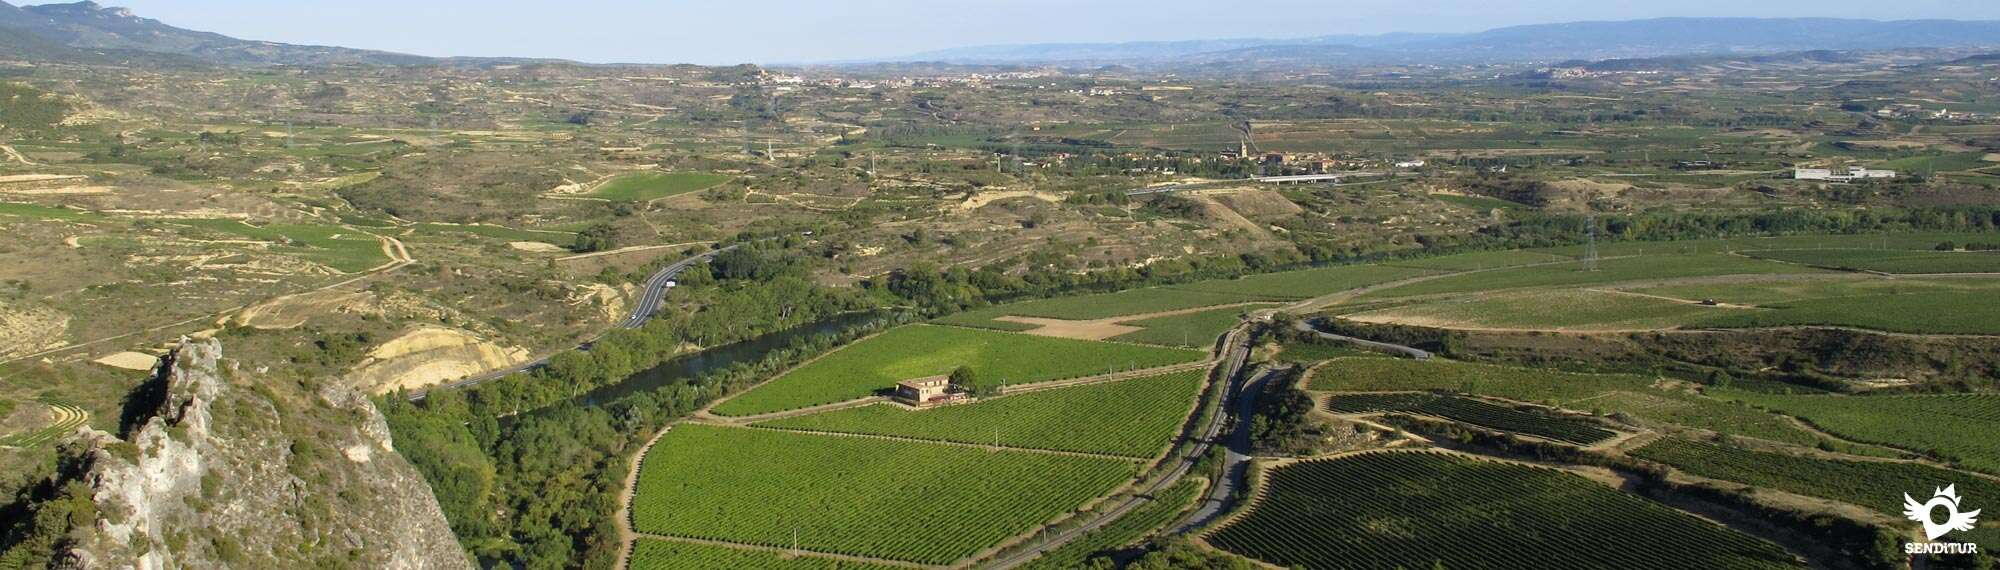 Wine Route of La Rioja Alta